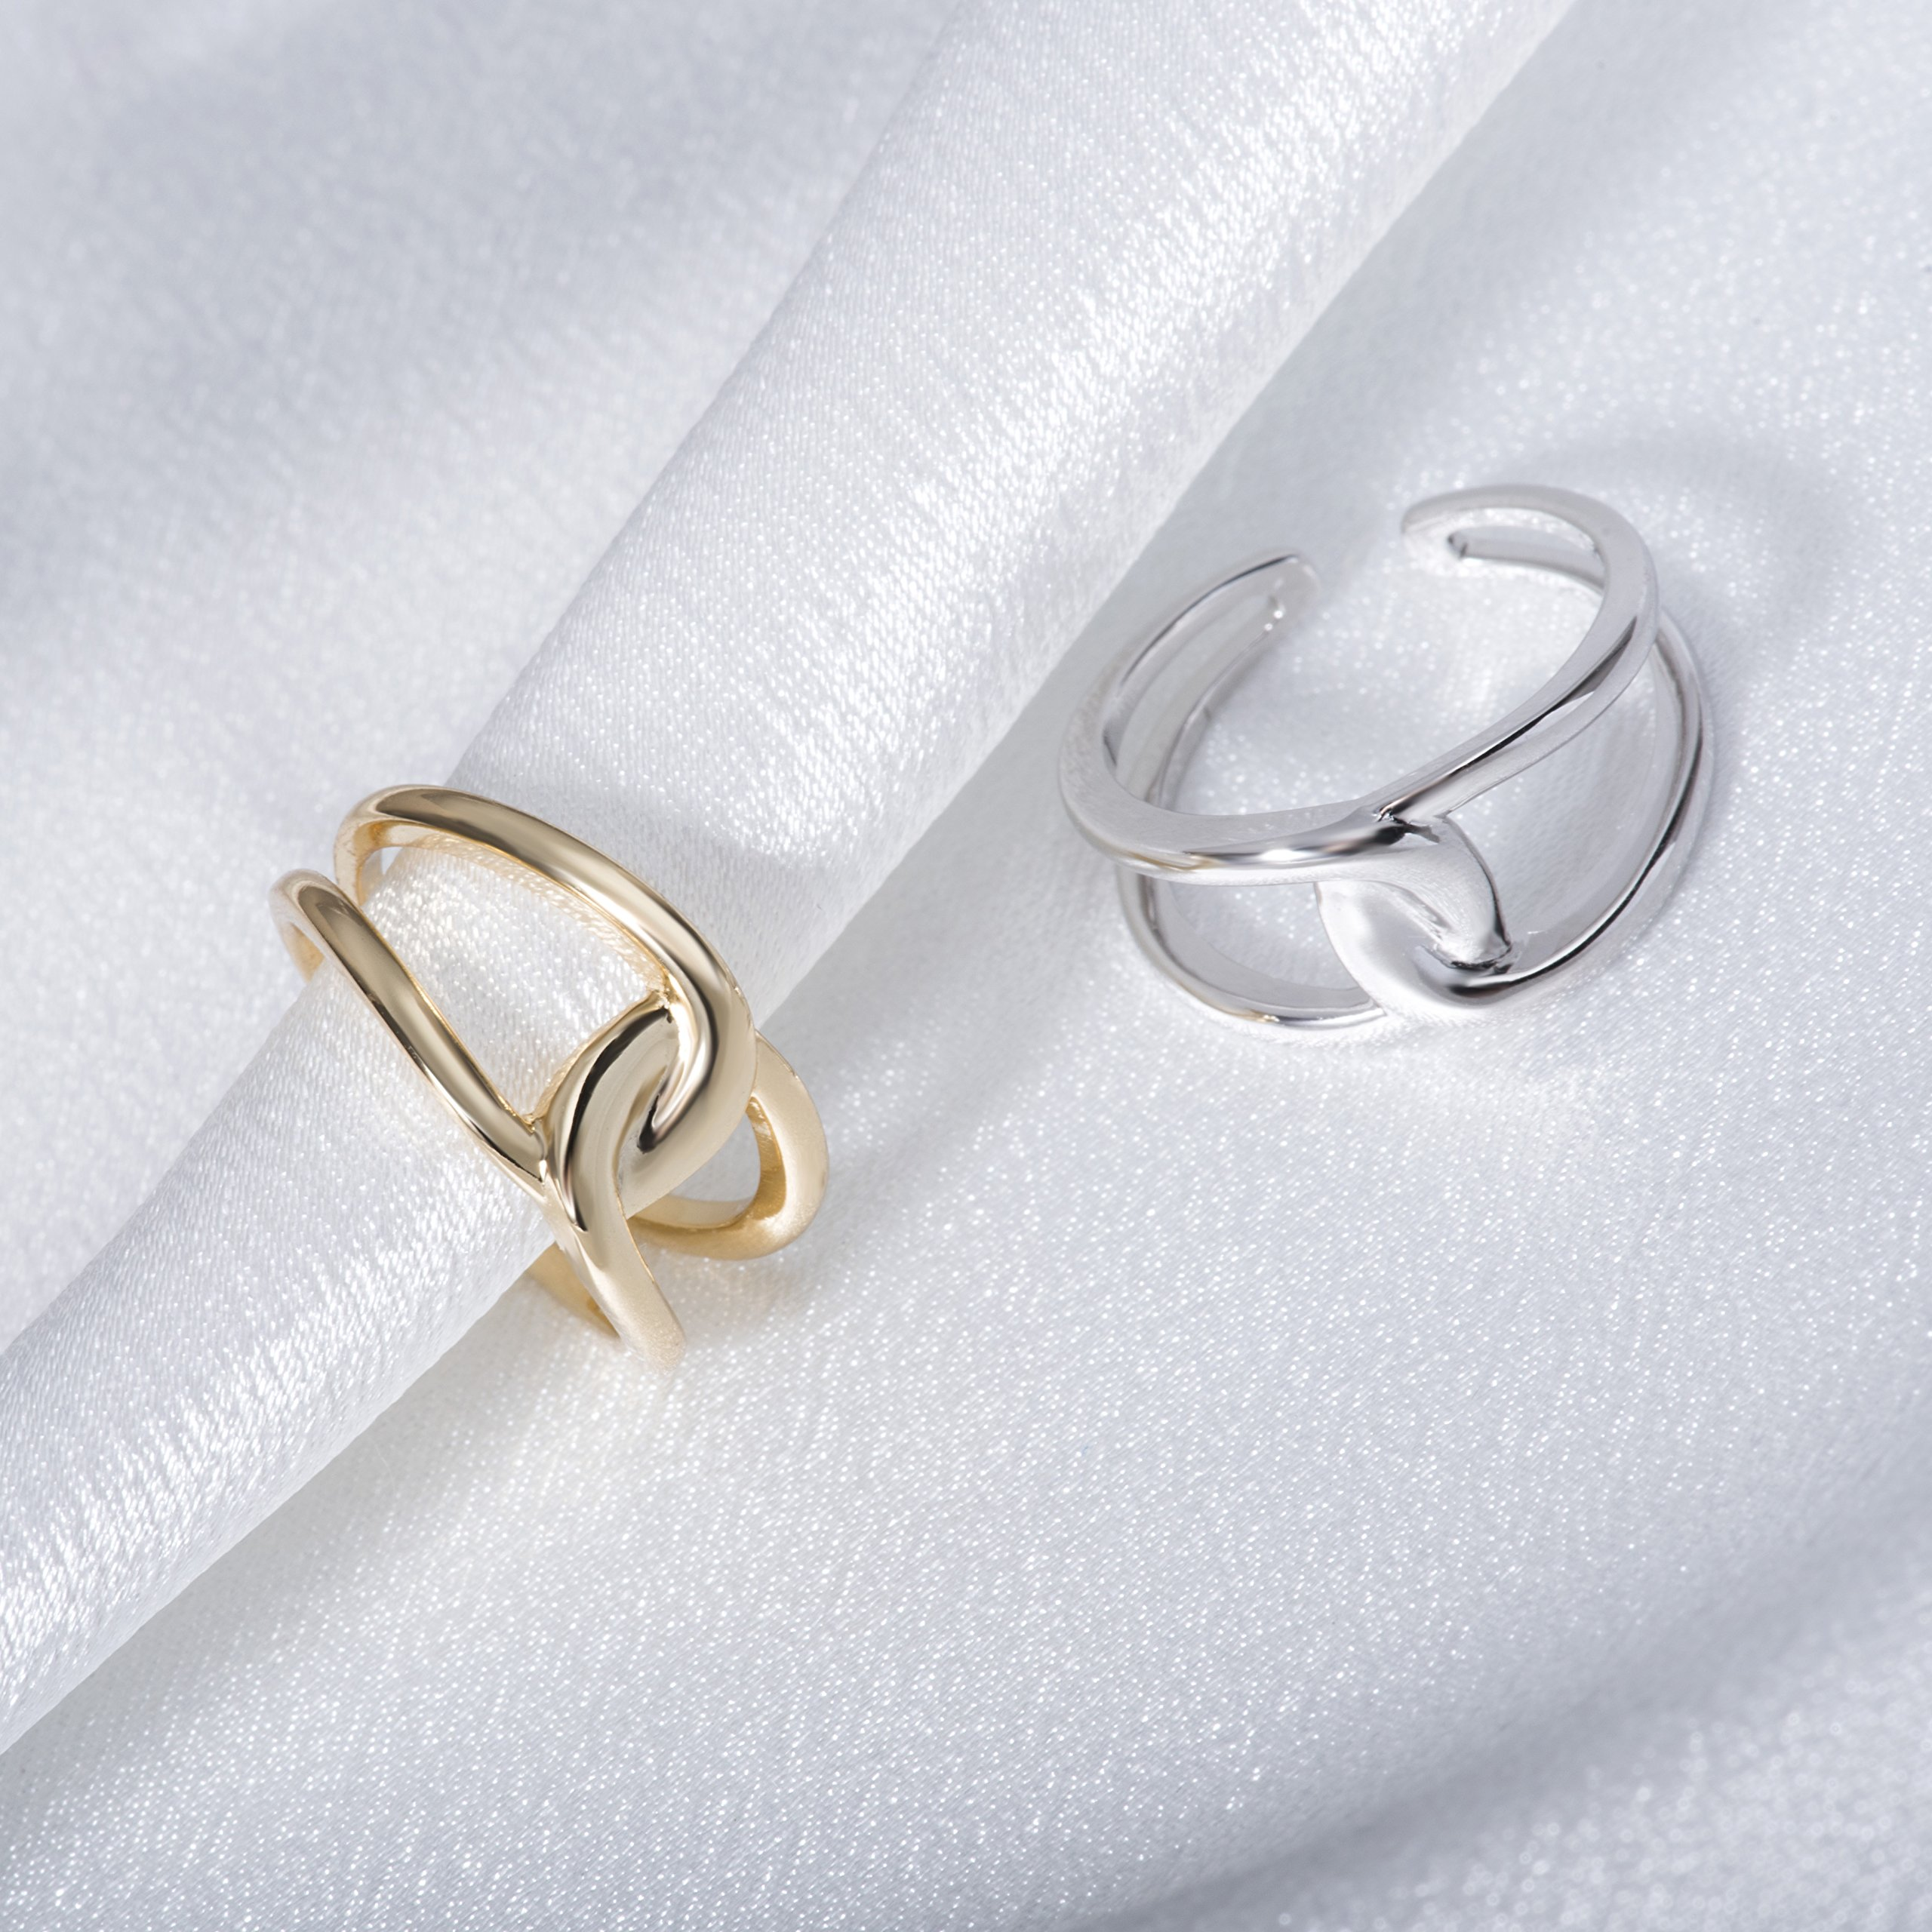 Fonsalette Gold Plated Infinity Ring Sterling Silver Open Twist Ring Two Band Ring (silver) by Fonsalette (Image #7)